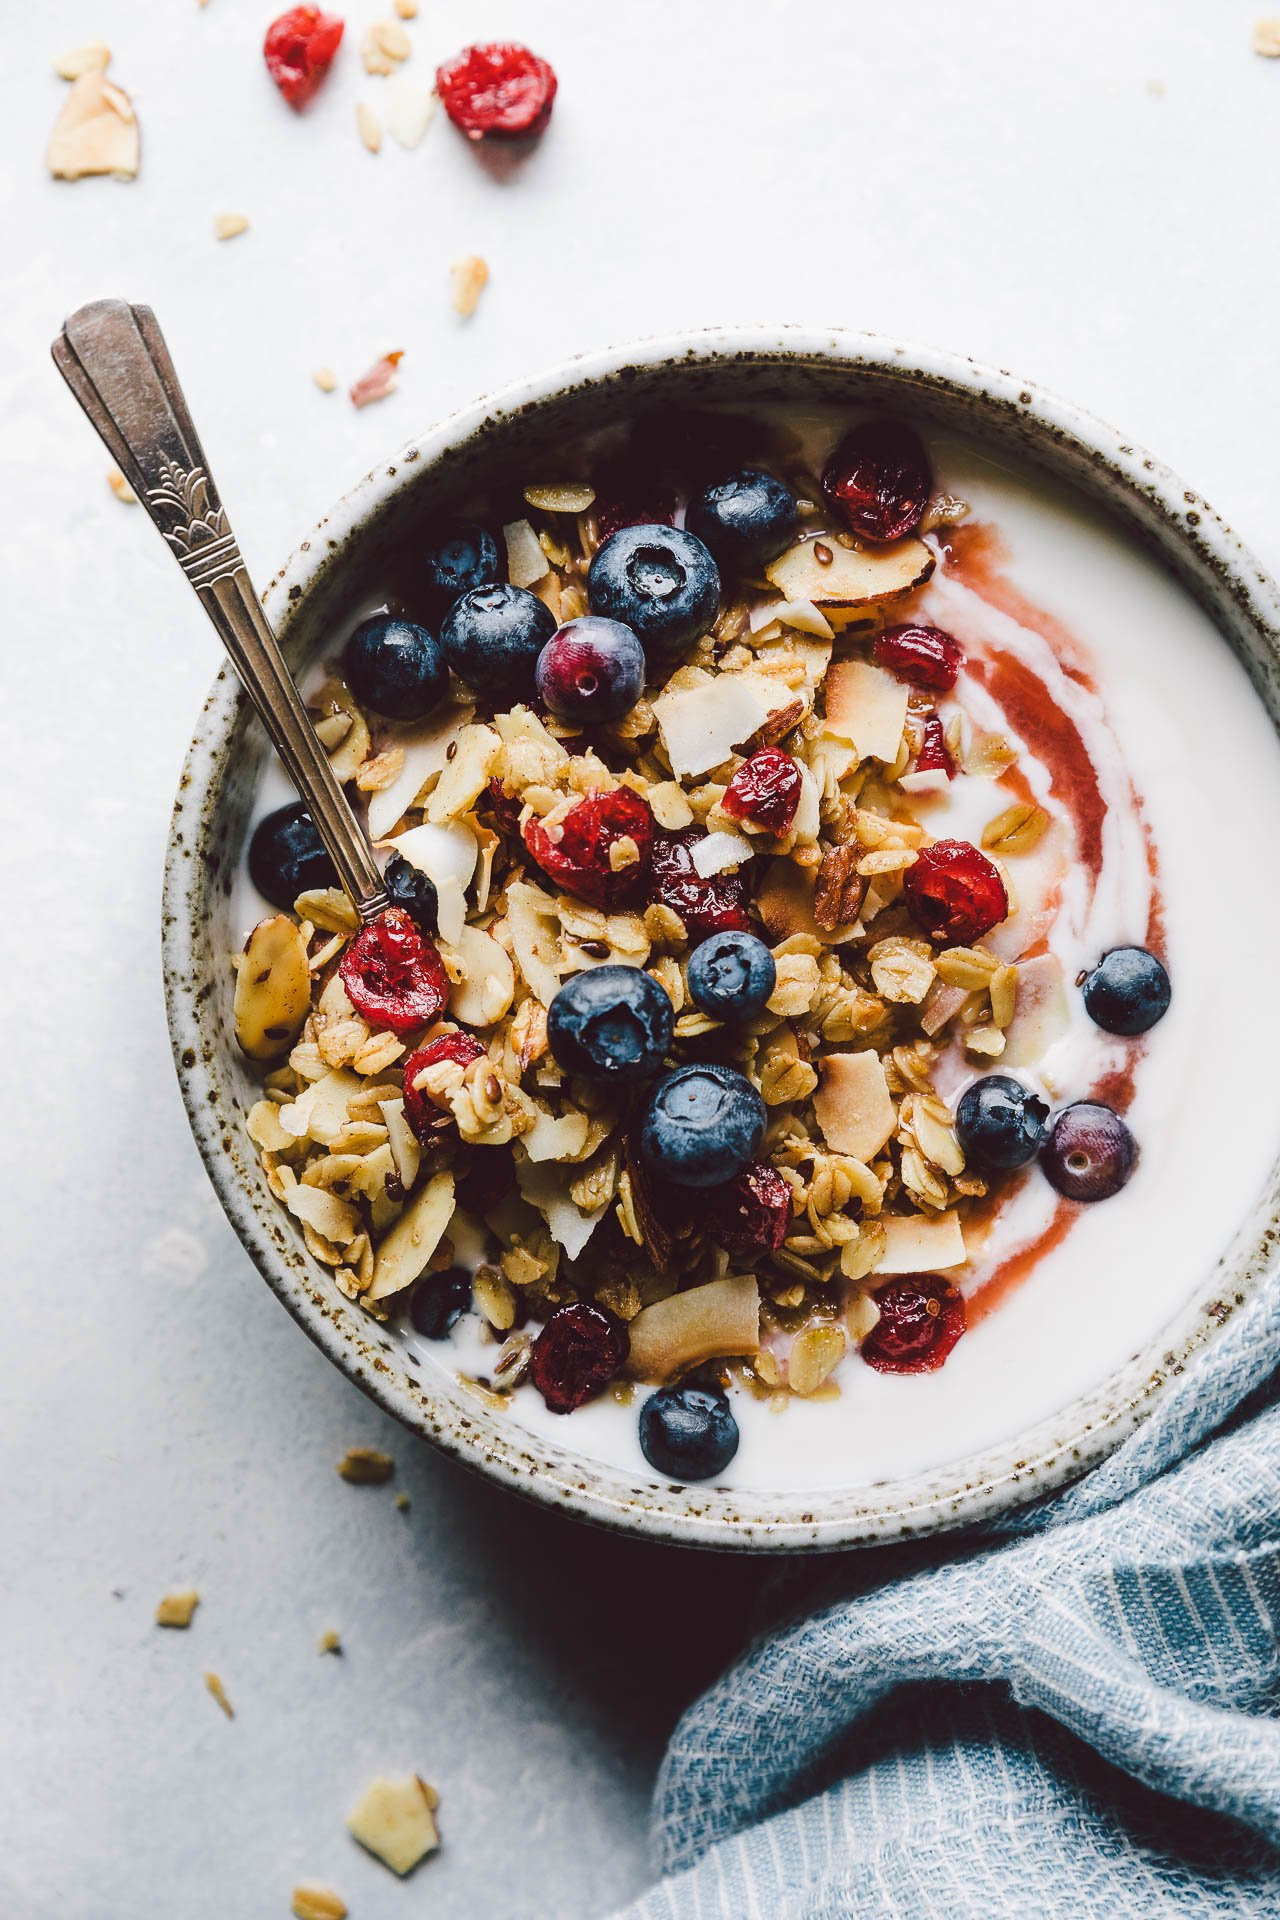 Everyday Granola {Gluten-Free + Vegan} | HonestlyYUM (honestlyyum.com) #recipes #granola #breakfast